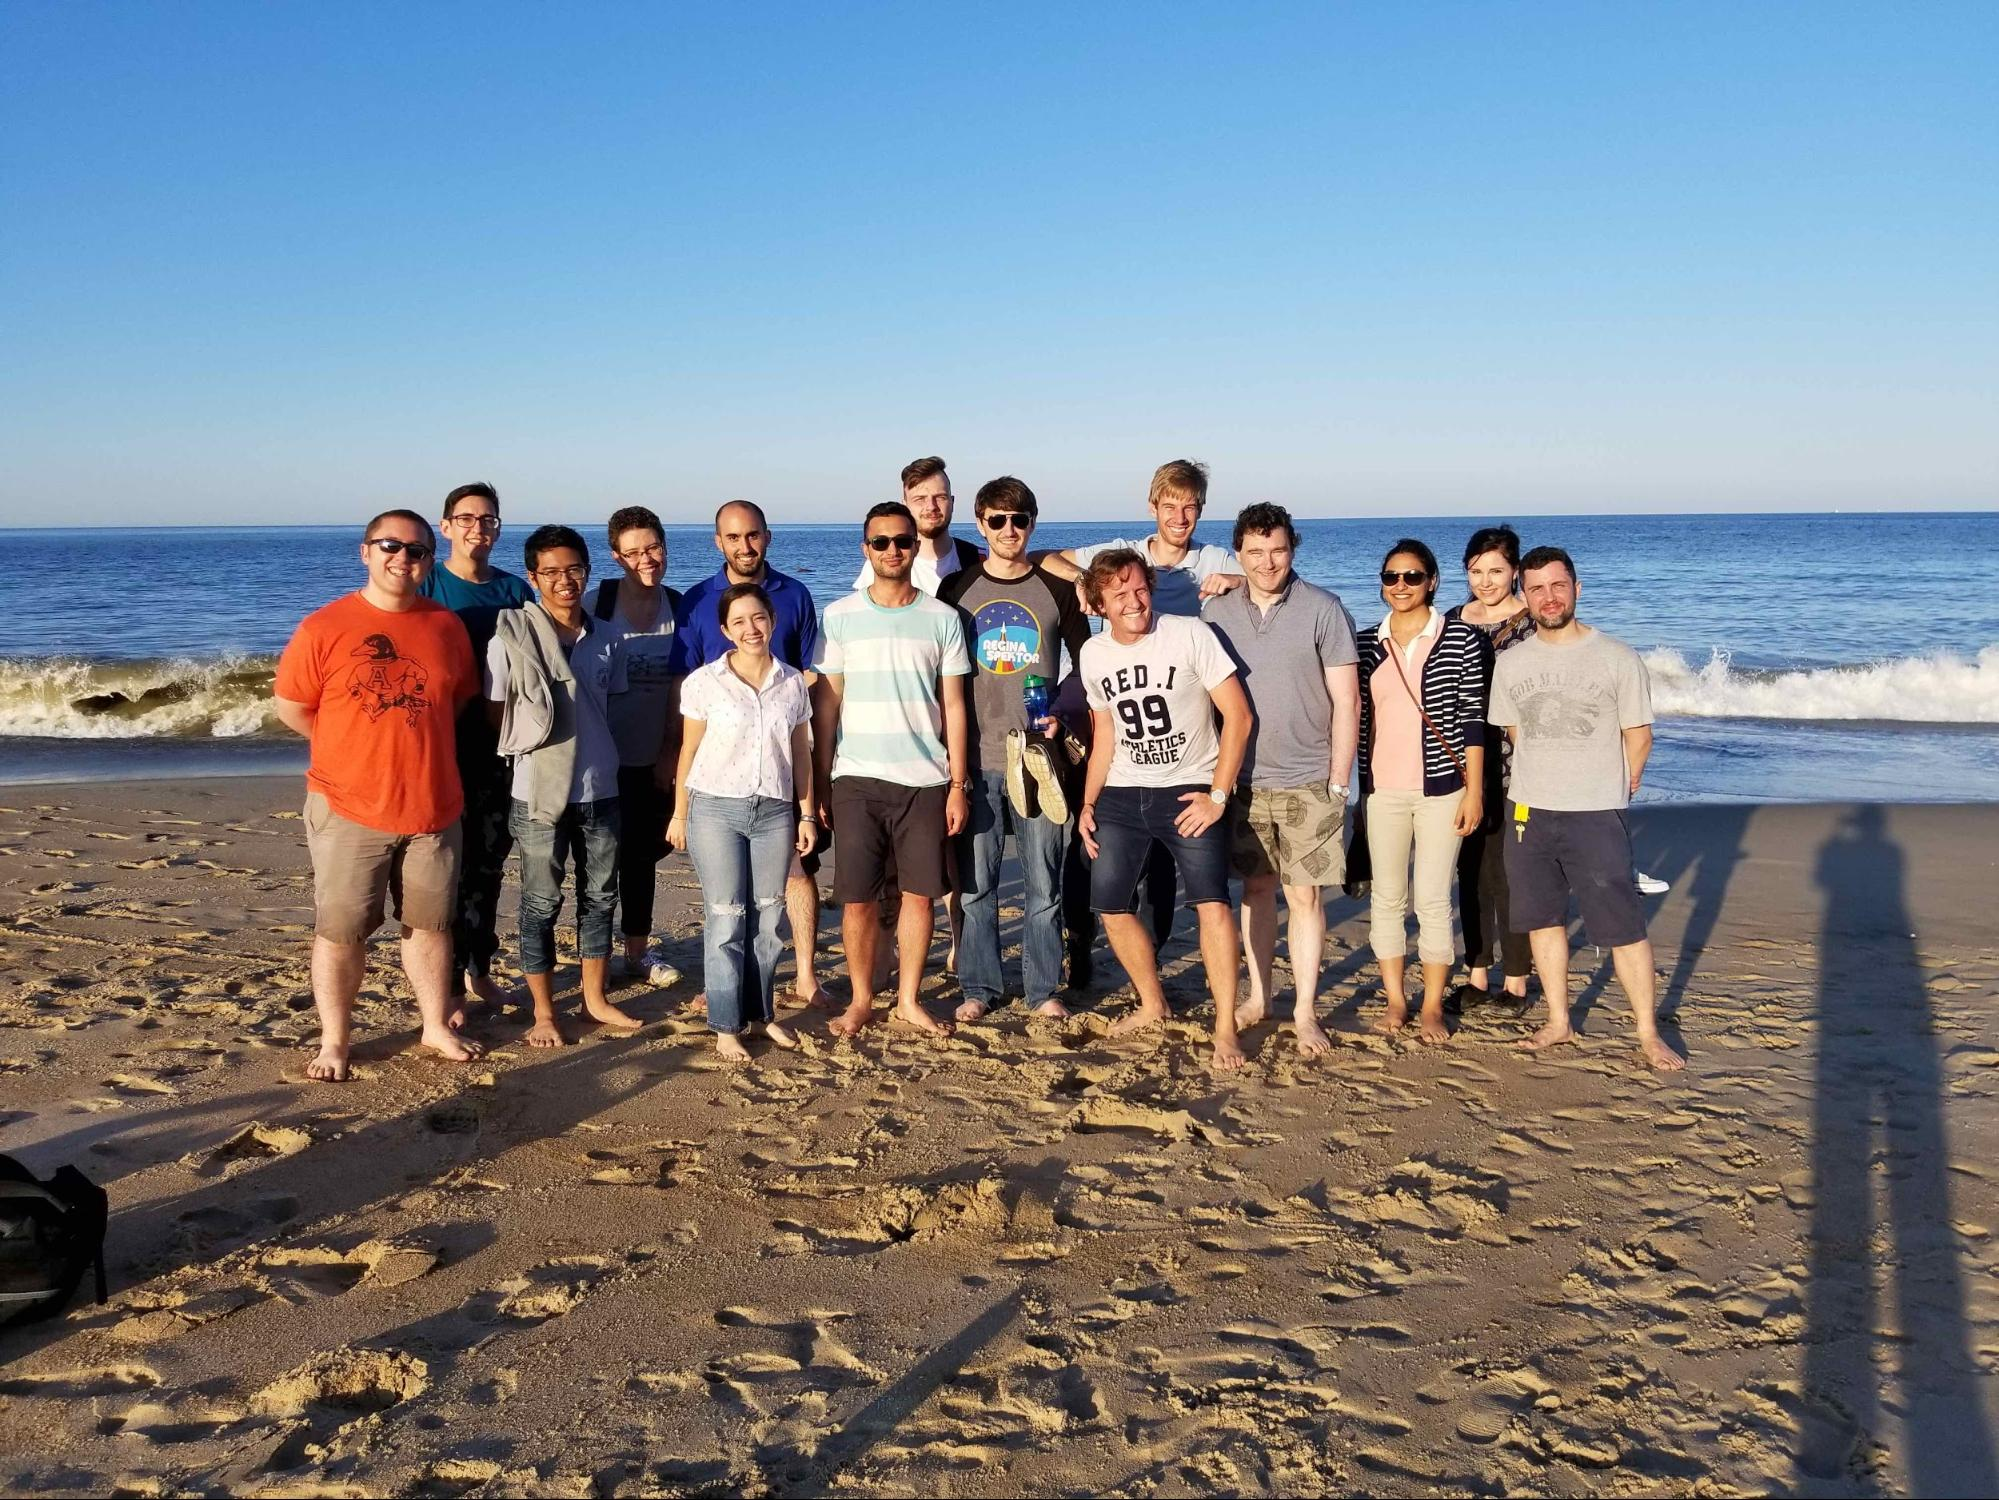 Fermi Summer School students have a beach day